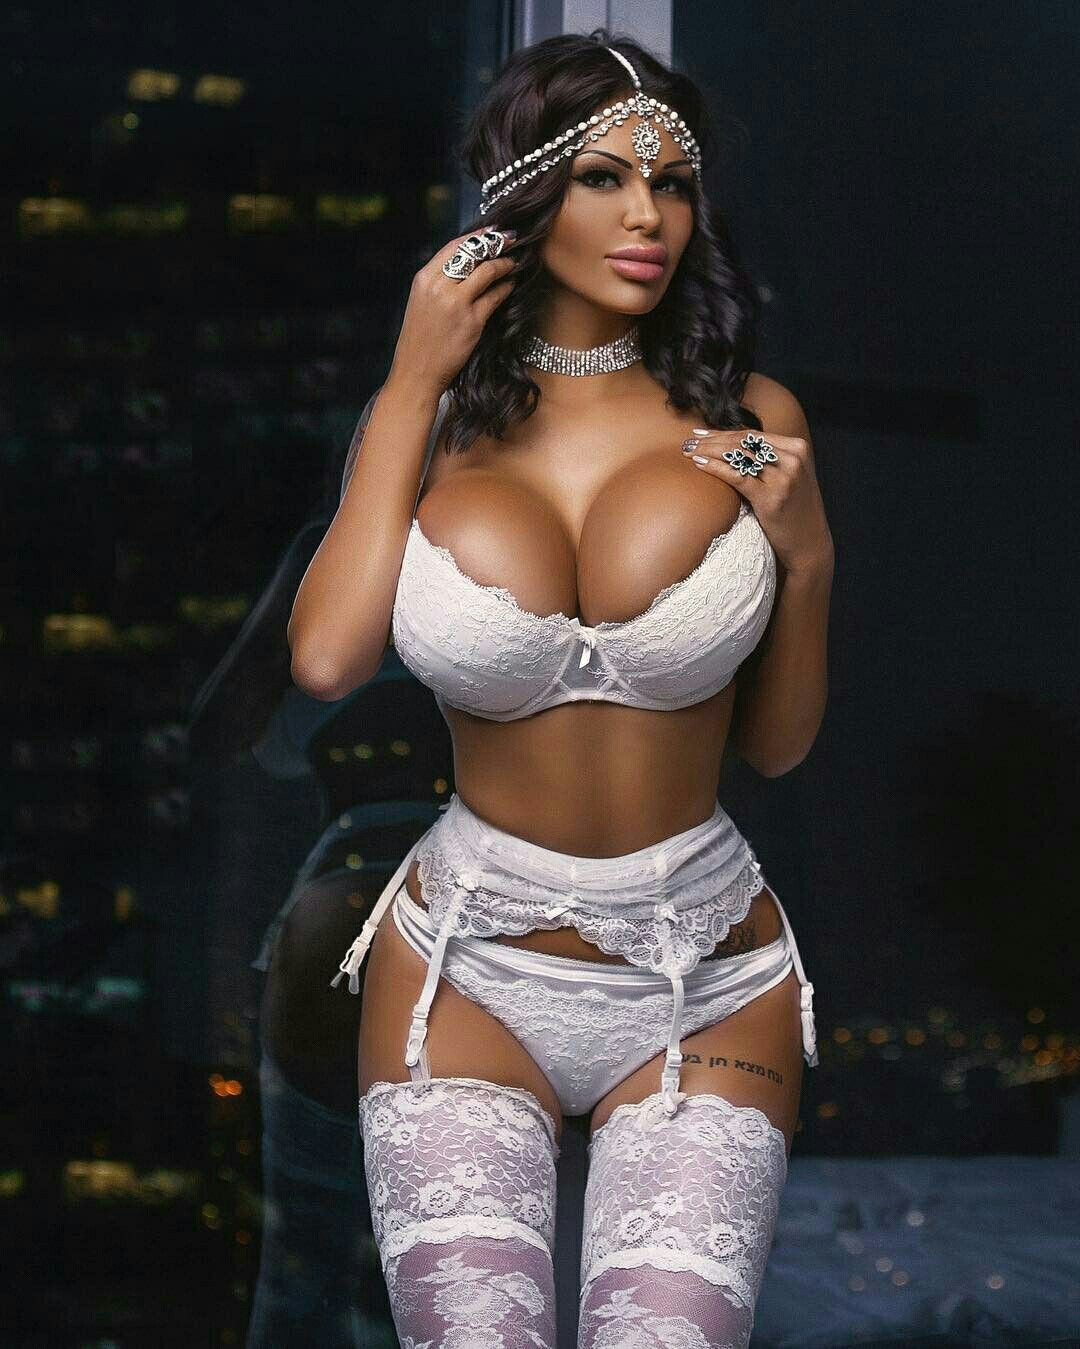 pincharles square on bra | pinterest | exotic, boobs and glamour